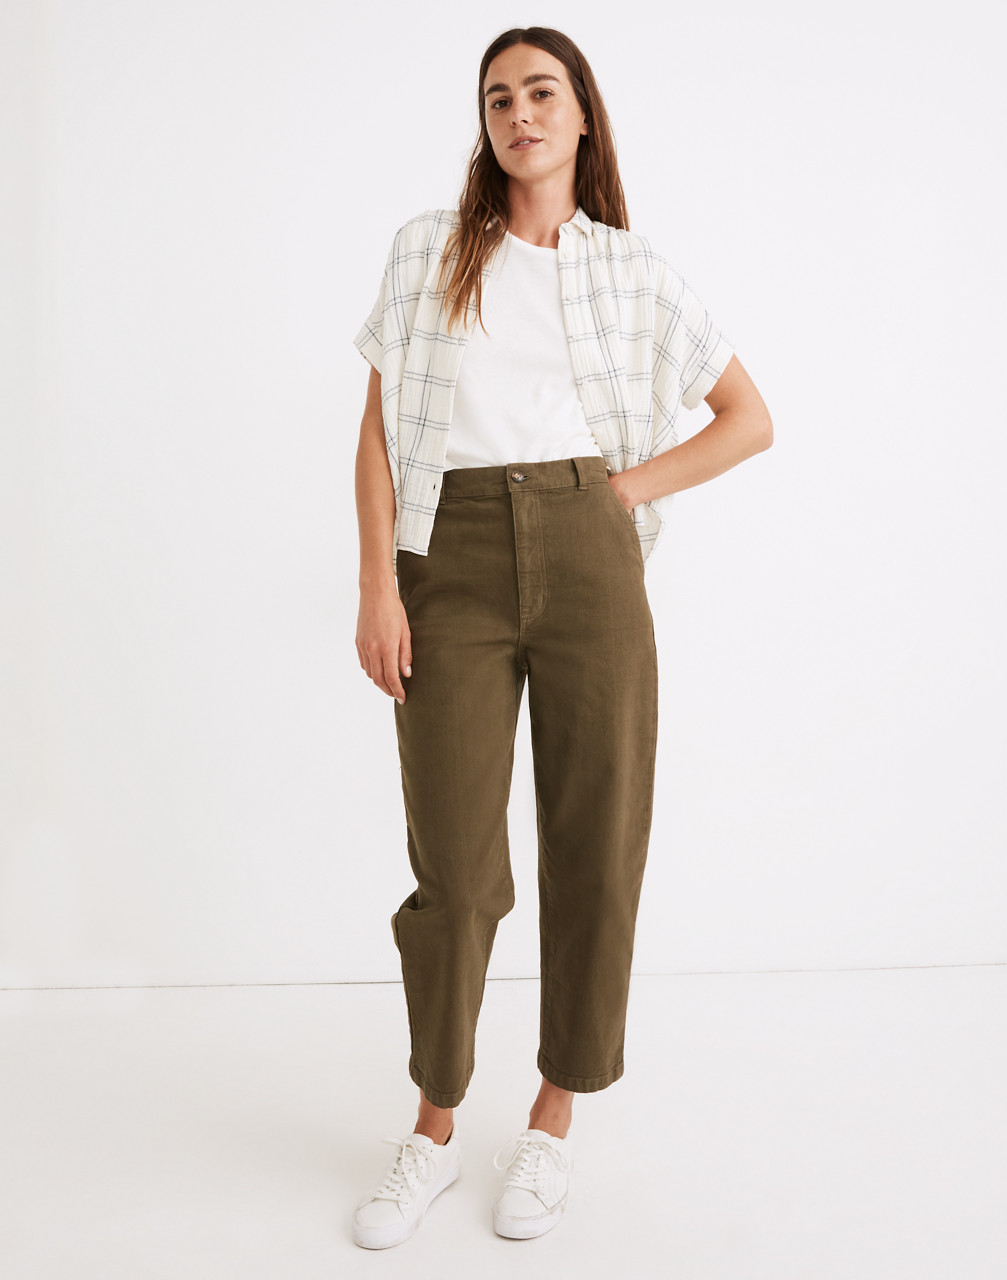 80s Fashion— What Women Wore in the 1980s Balloon Pants $98.00 AT vintagedancer.com